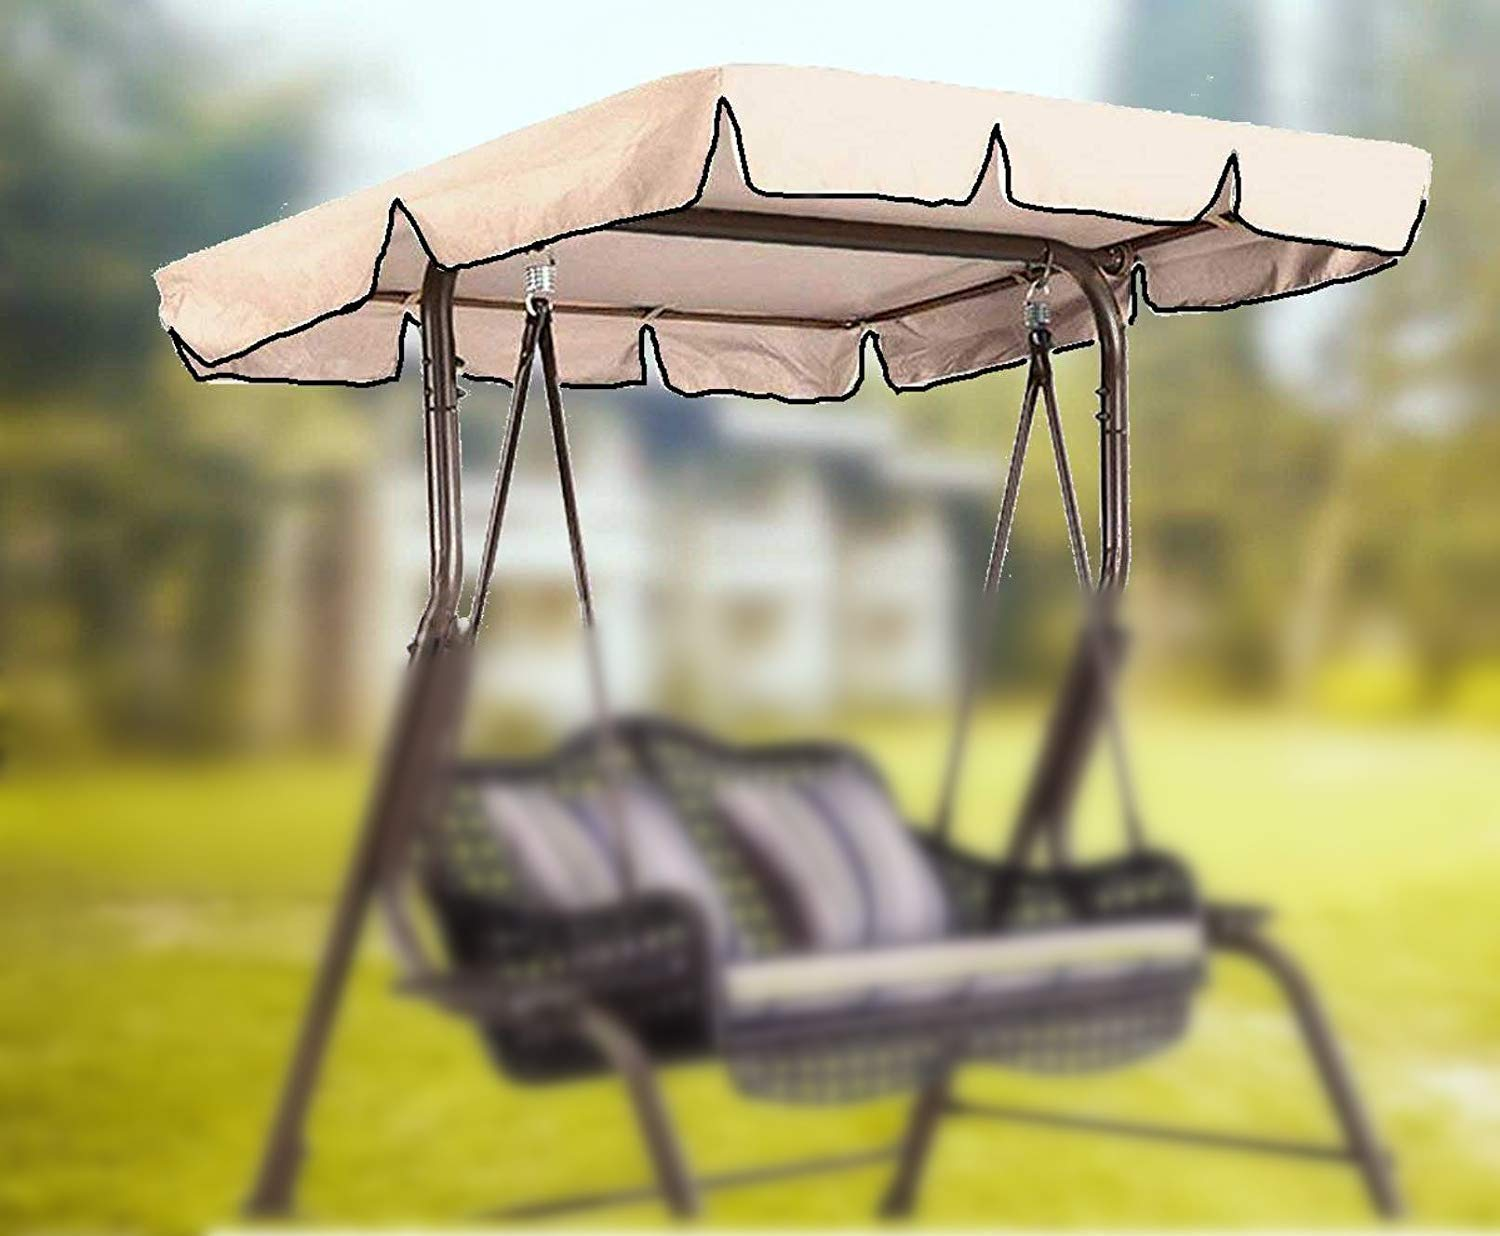 boyspringg Swing Canopy Replacement Cover Waterproof Top Cover UV Block Sun Shade for Outdoor Porch Patio Swing Chair Garden Hammock Beige 55x47x7 inch